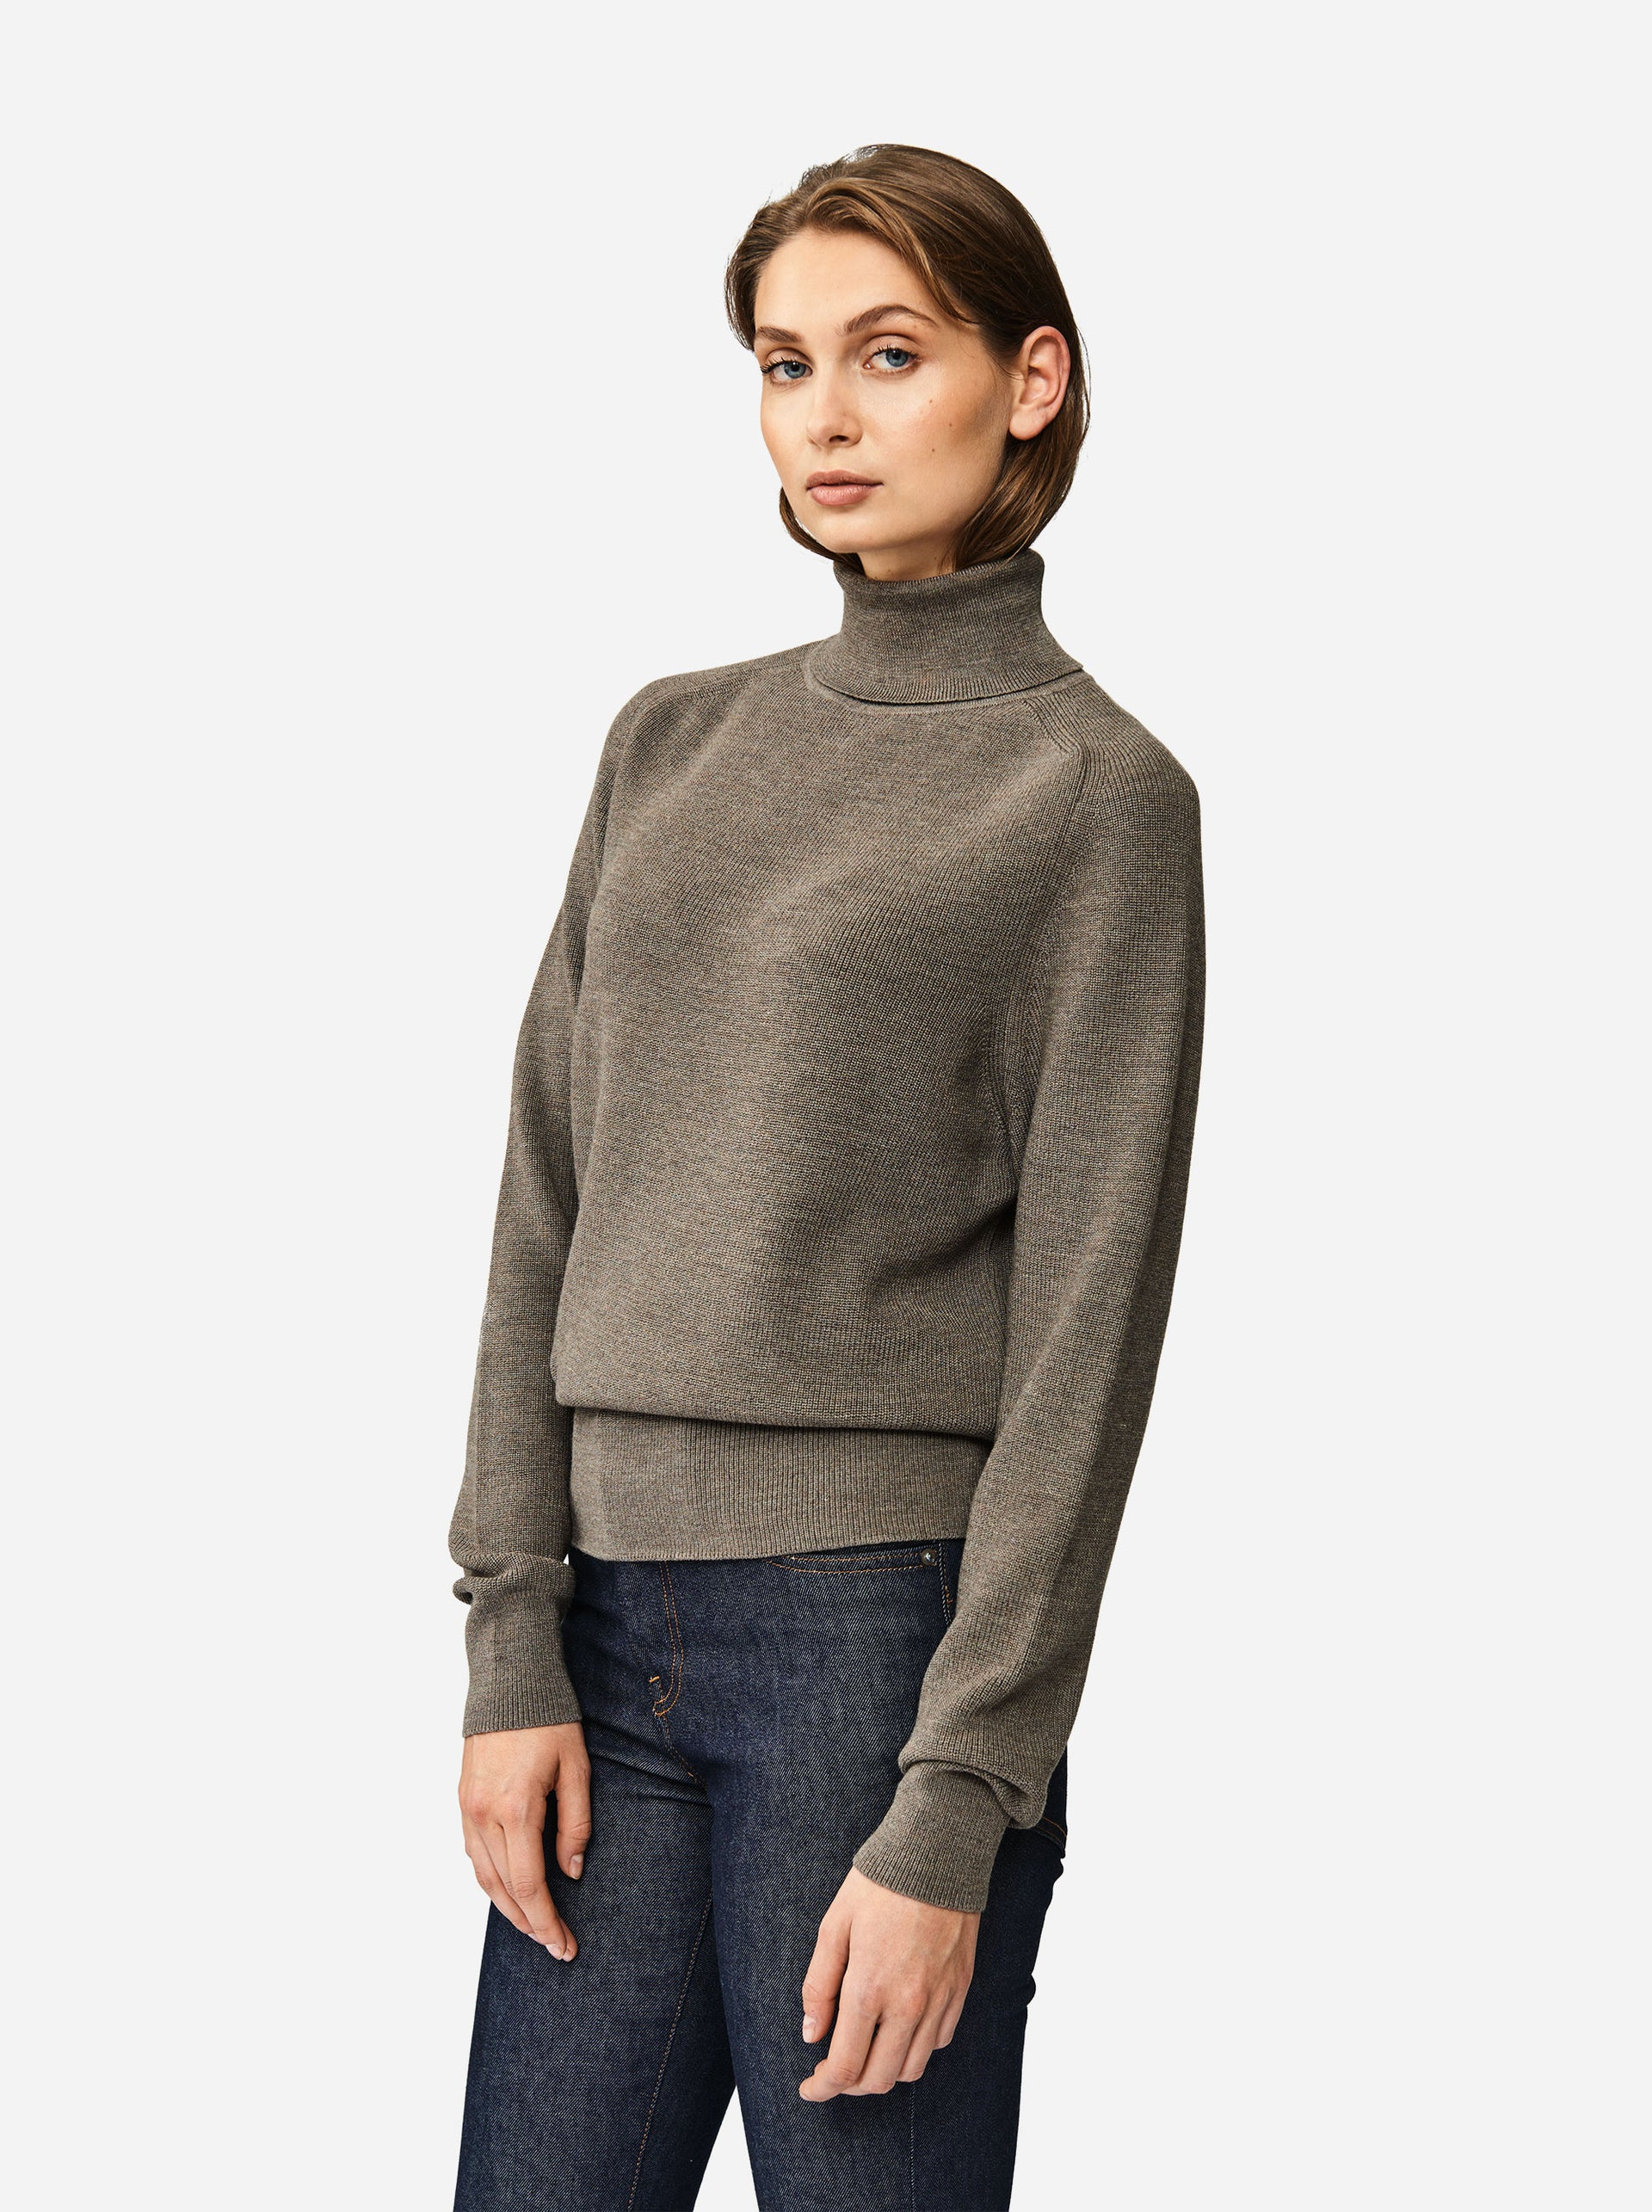 The Turtleneck Sweater - Warm grey